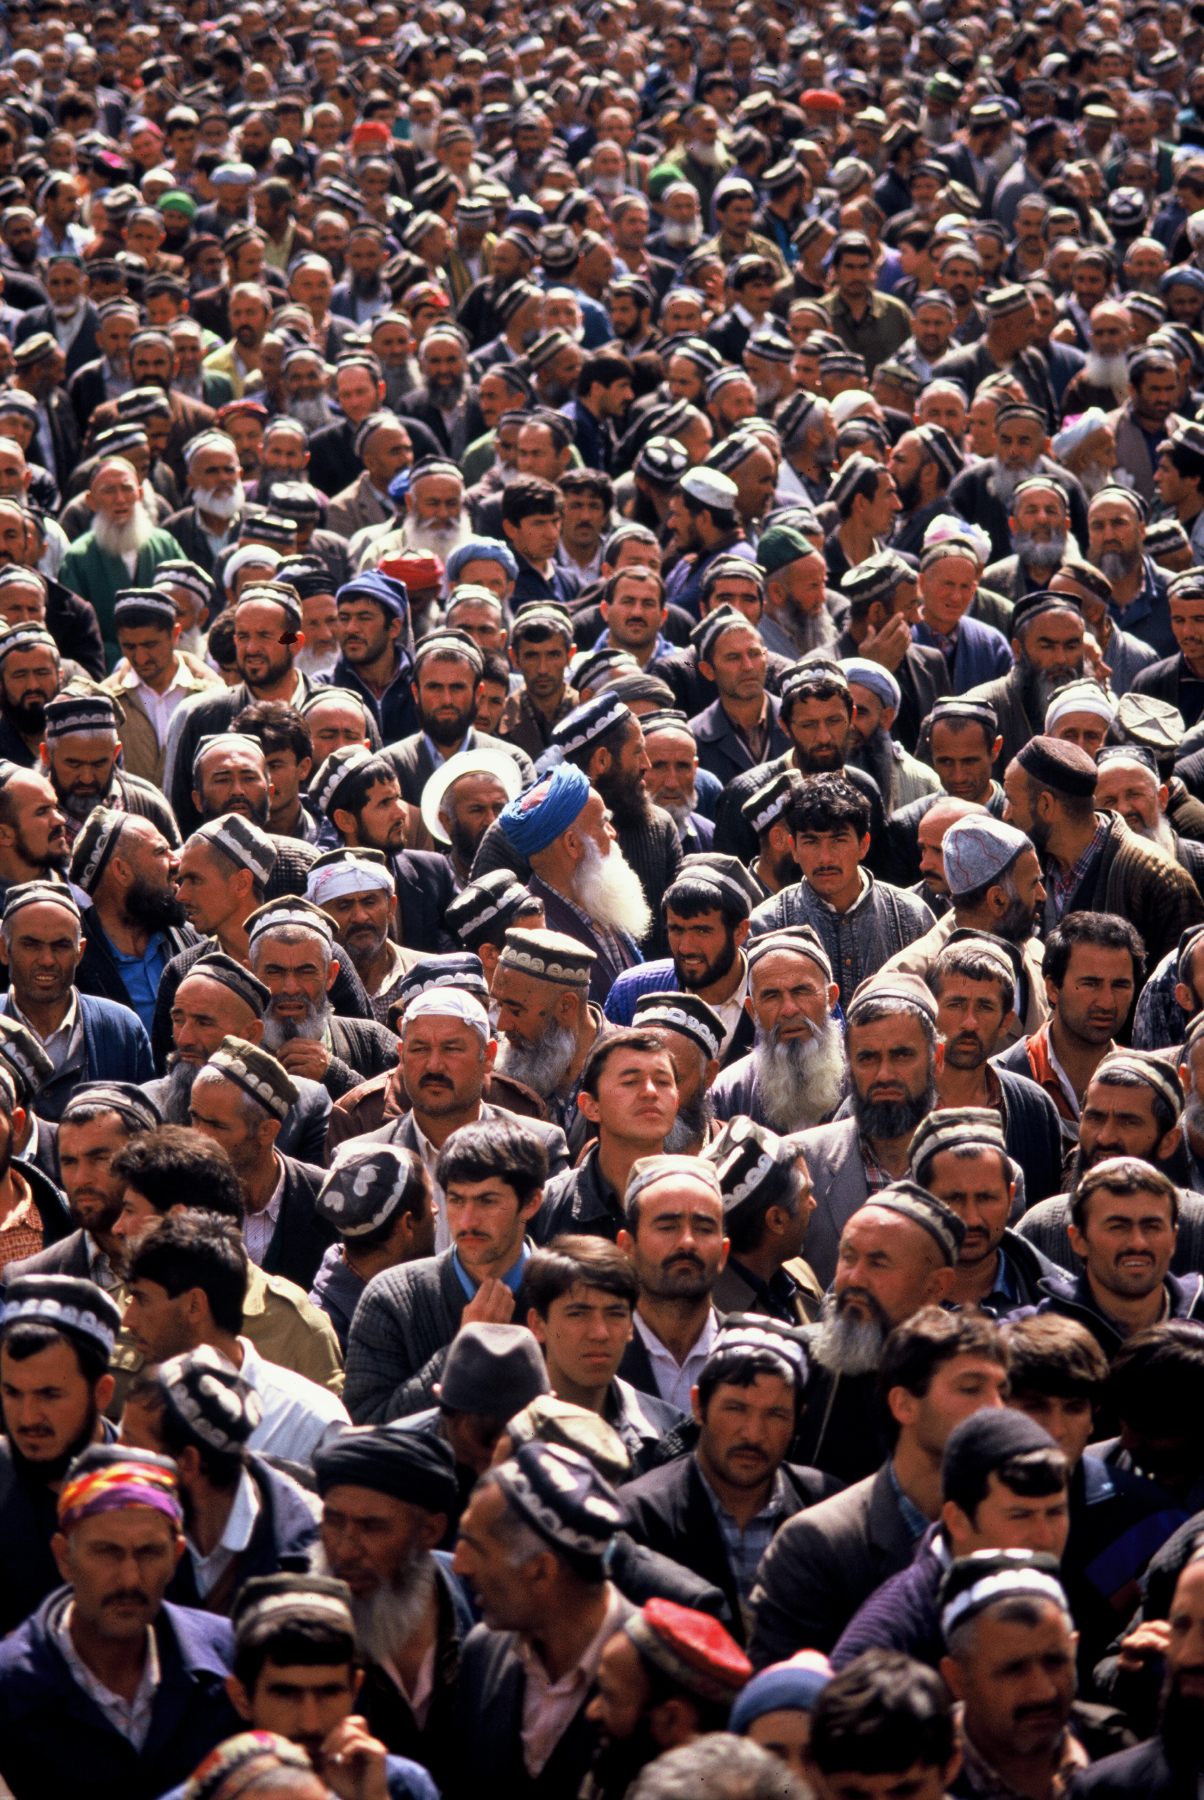 Islamic Renaissance Party members during a protest to overthrow the Soviet backed government in power in Dushanbe, Tajikistan.1992